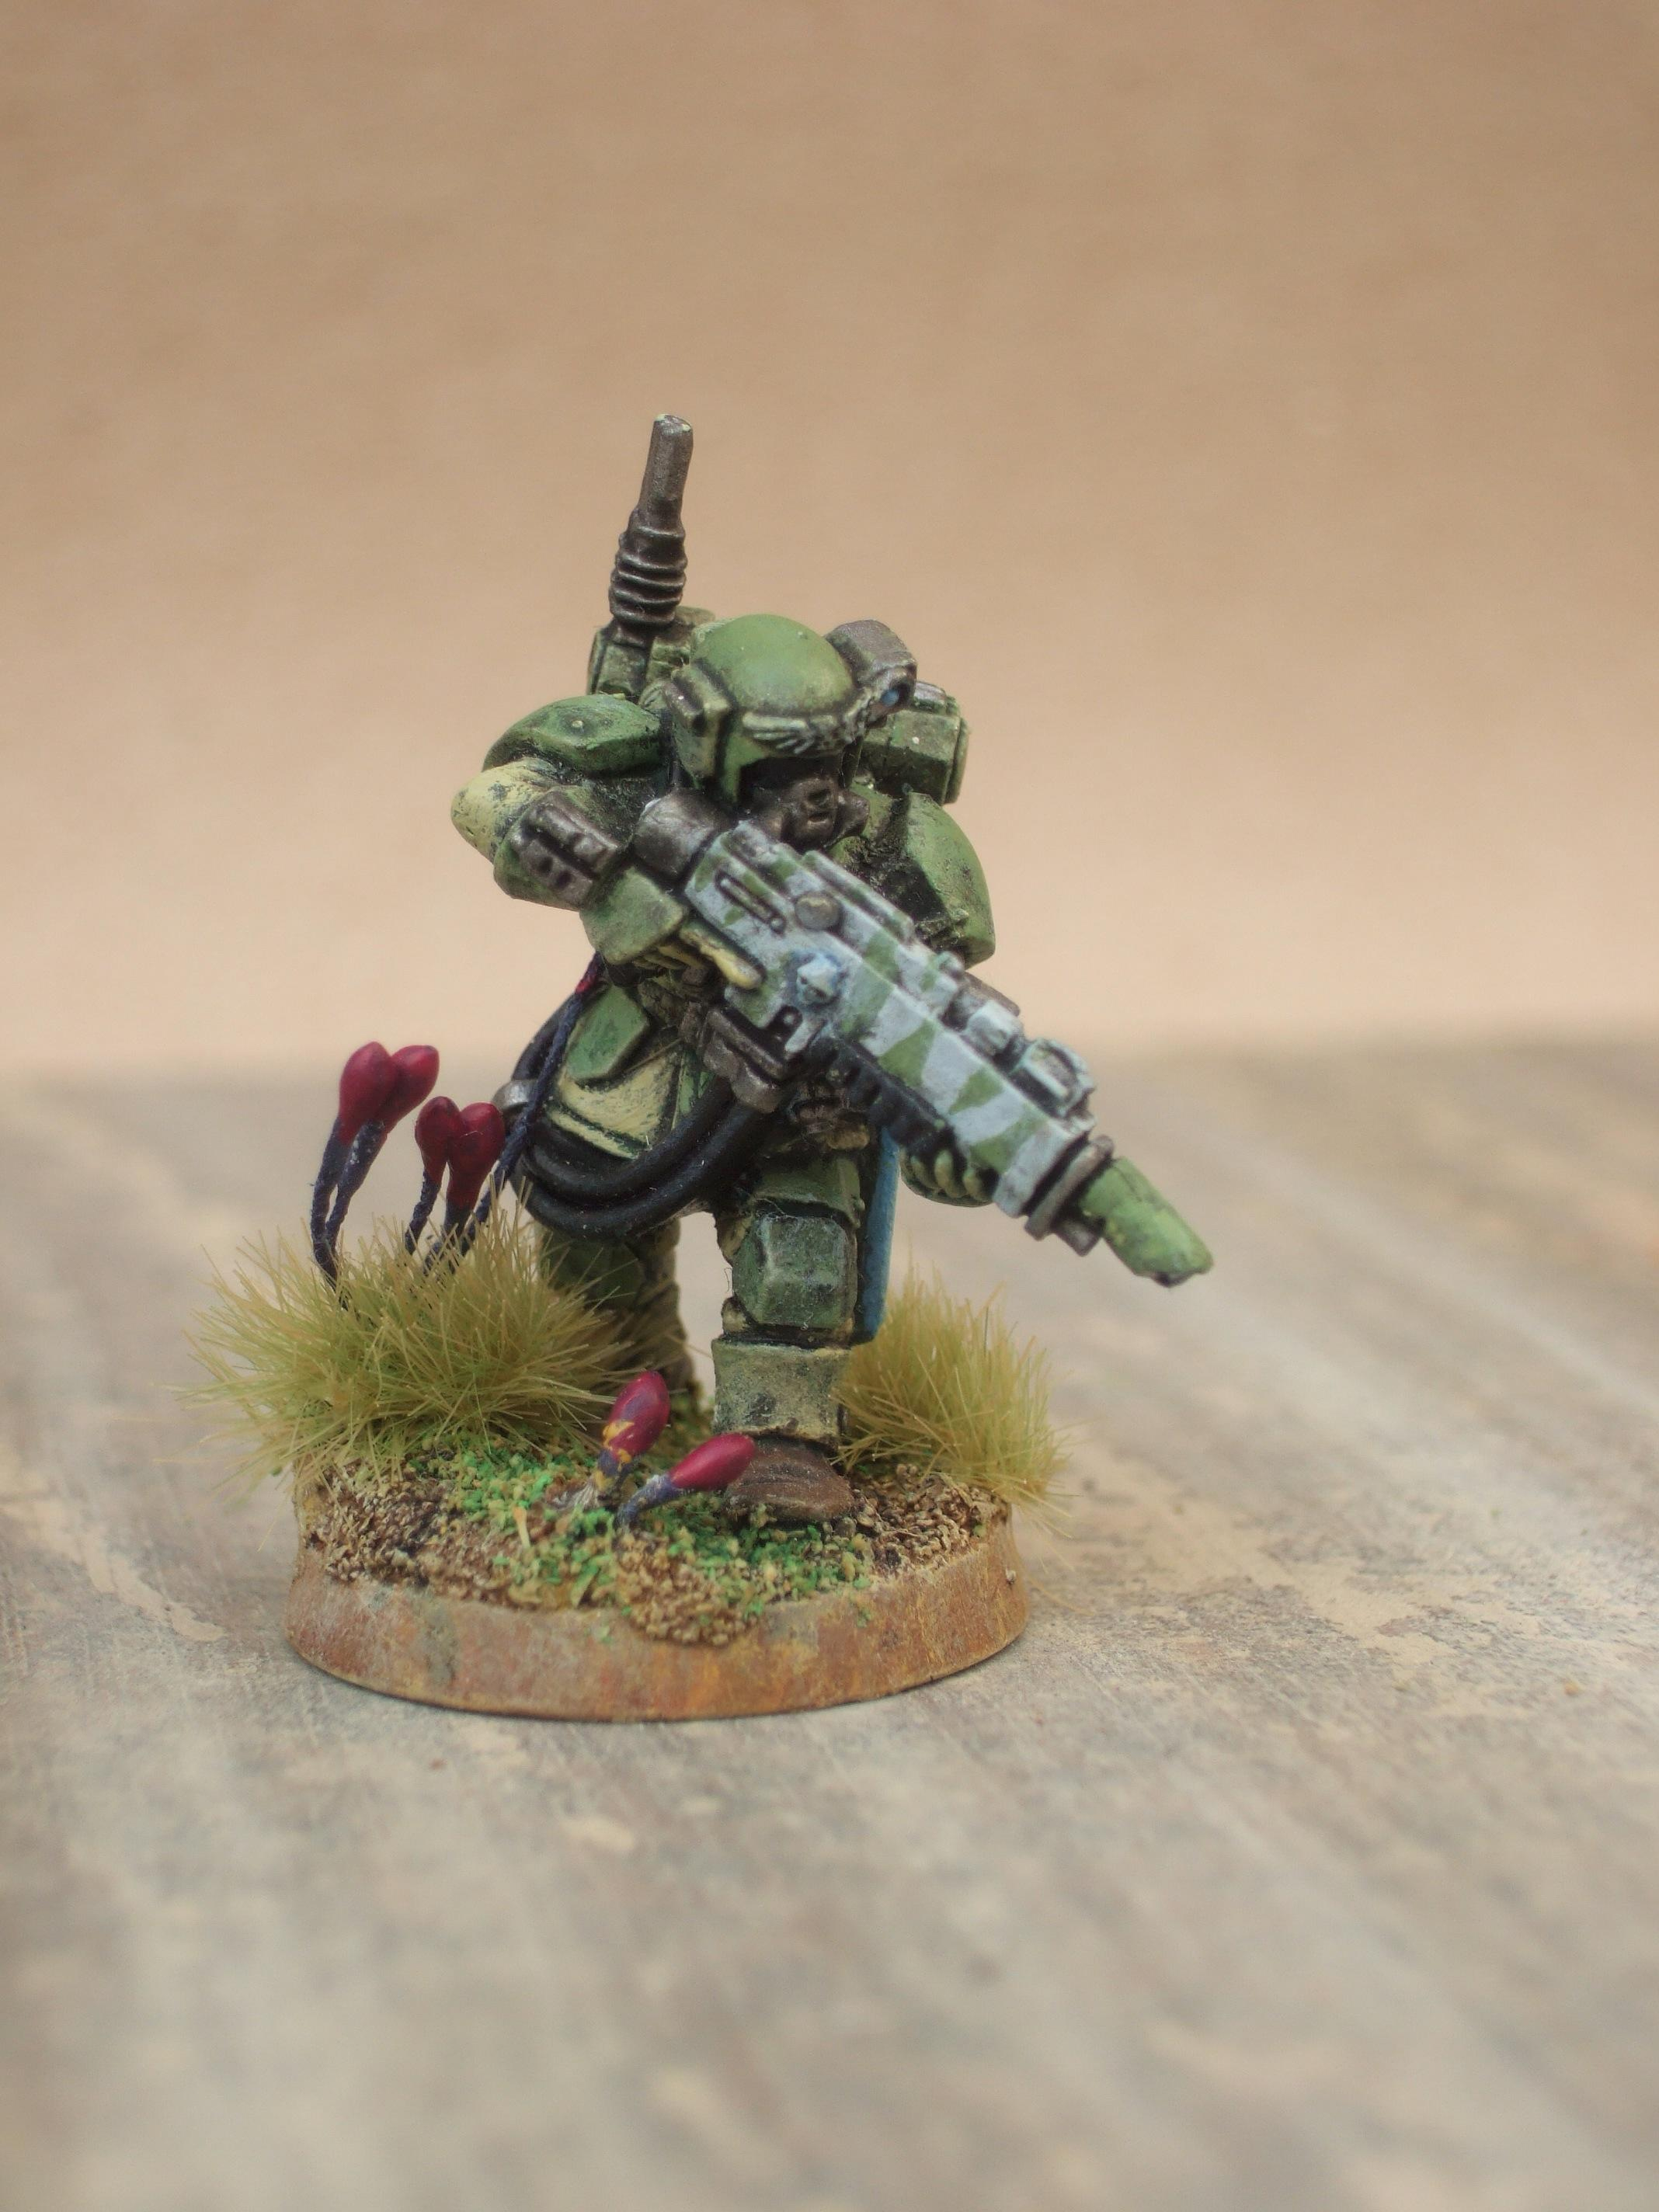 Am, Astra, Astra Militarum, Imperial Guard, Jungle, Militarum, Scion, Storm Troopers, Warhammer 40,000